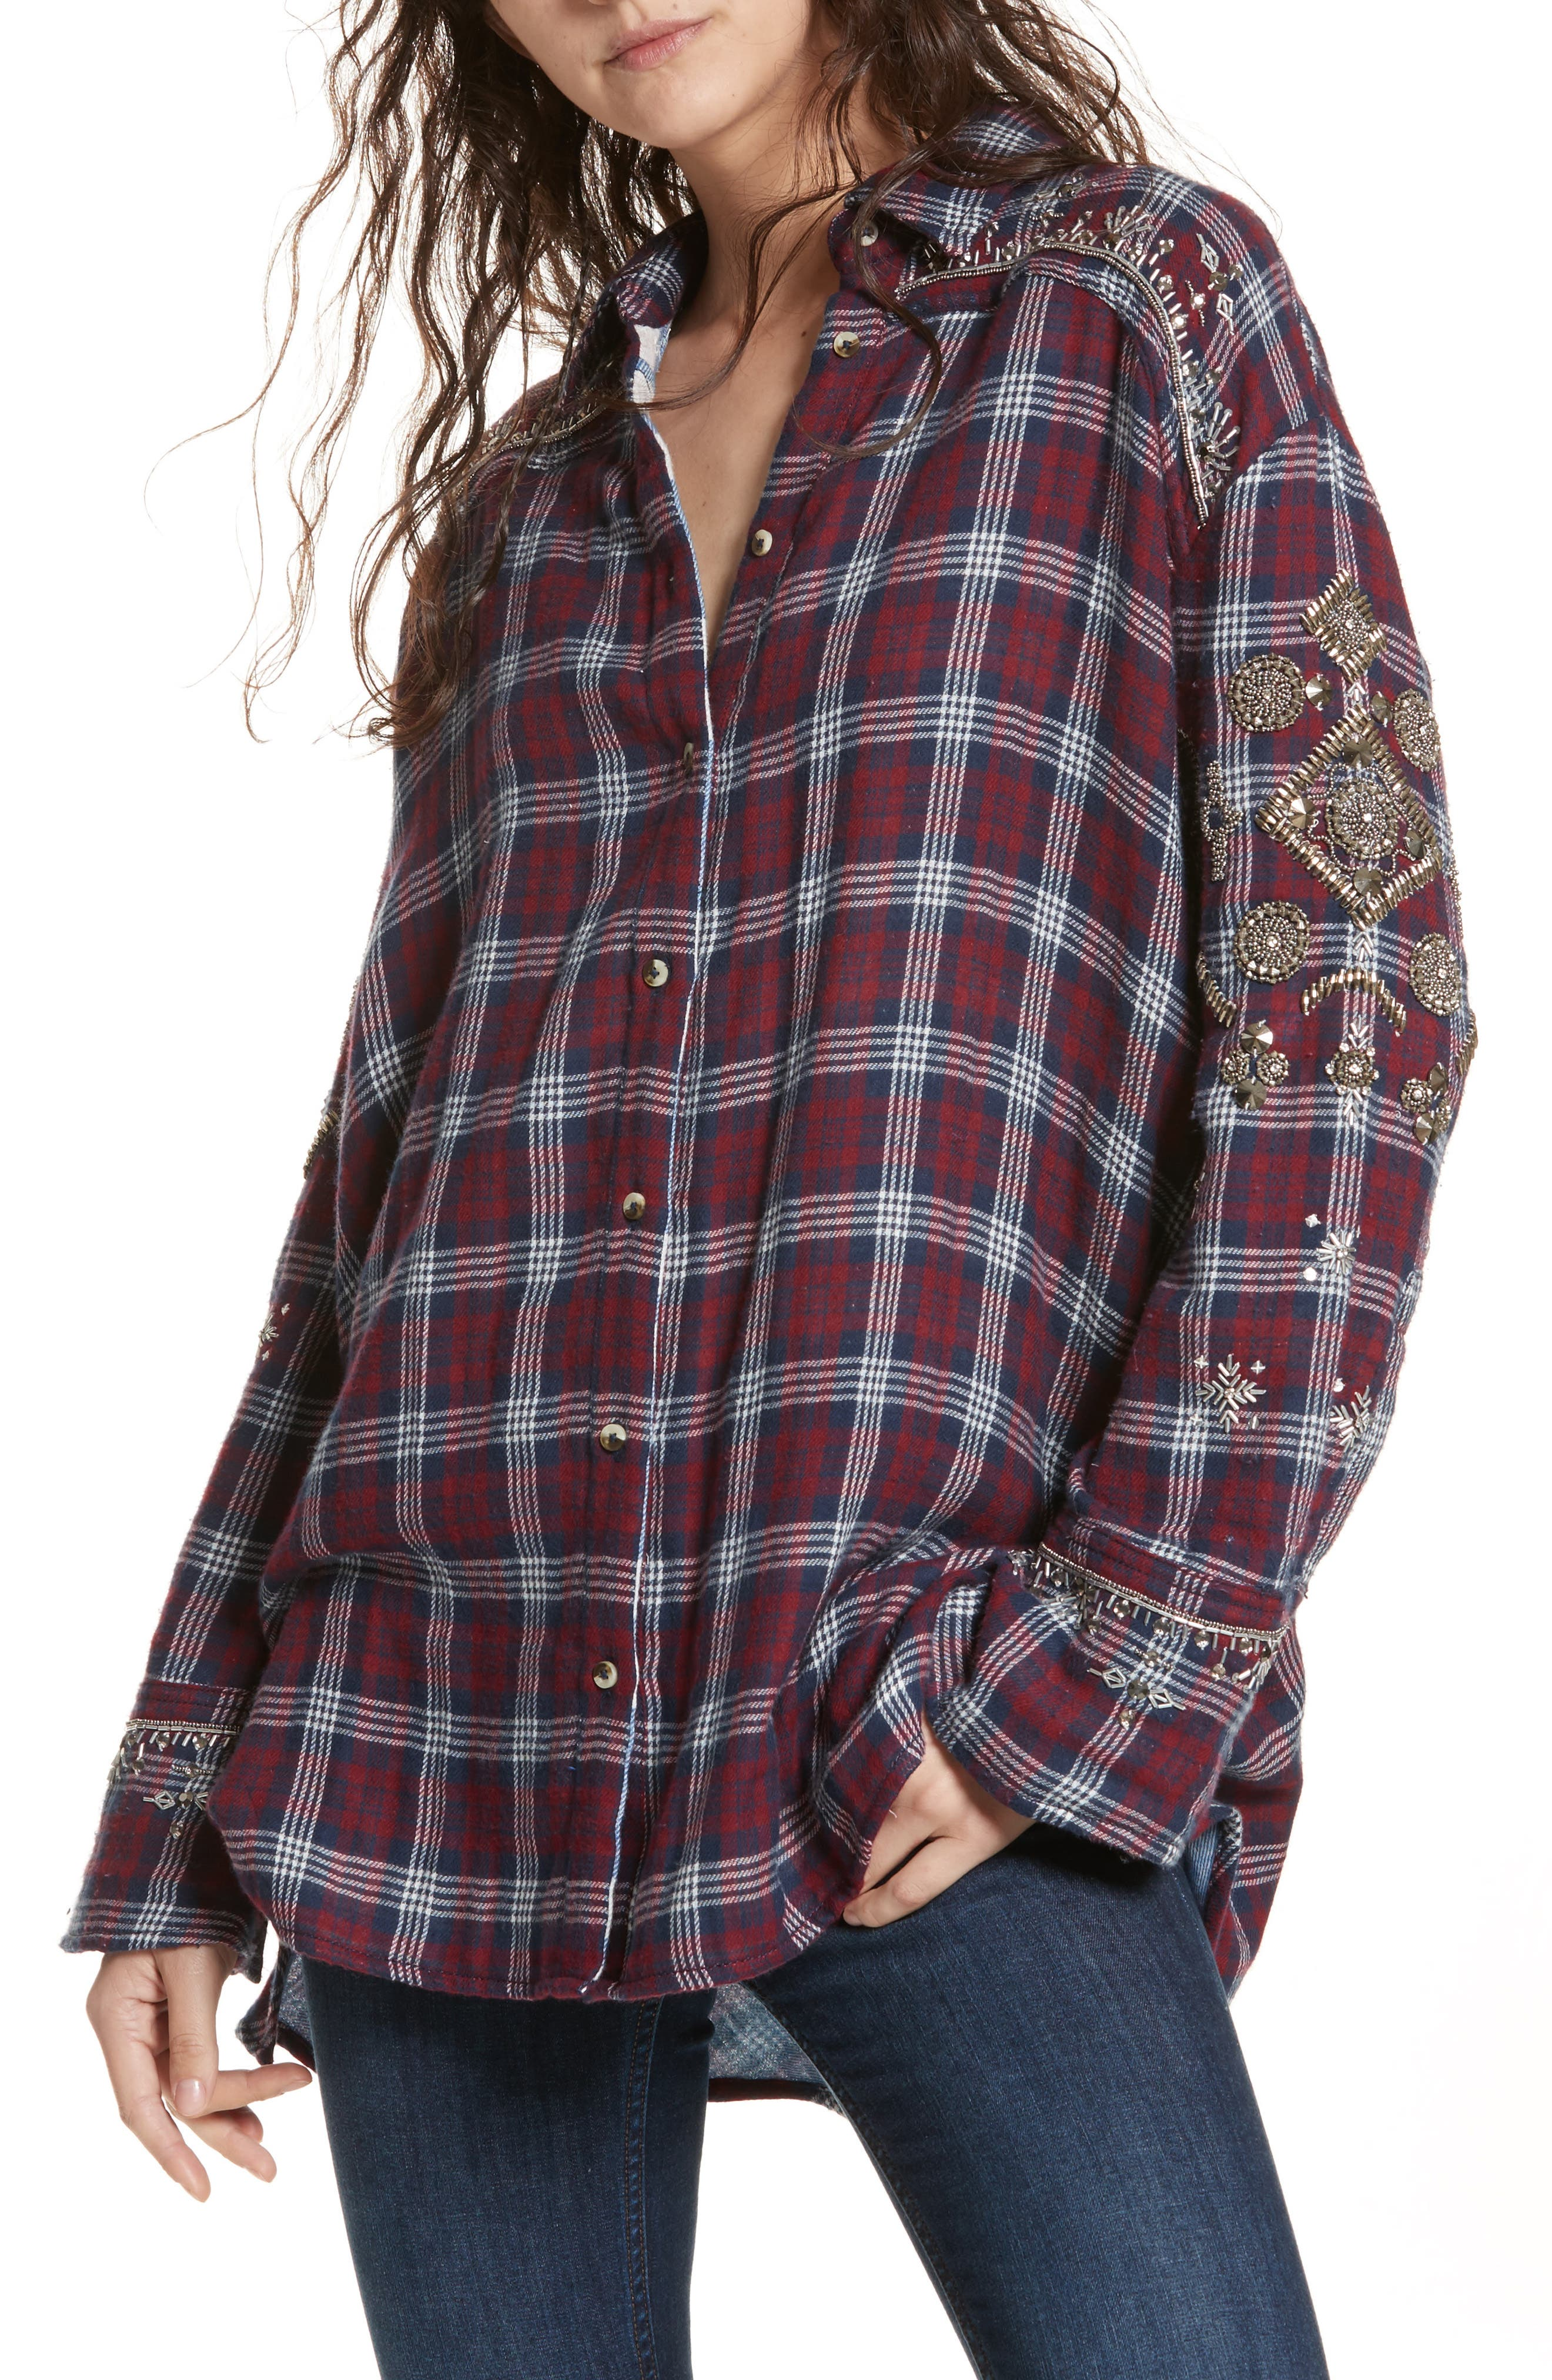 Downtown Romance Embellished Shirt,                             Main thumbnail 1, color,                             600